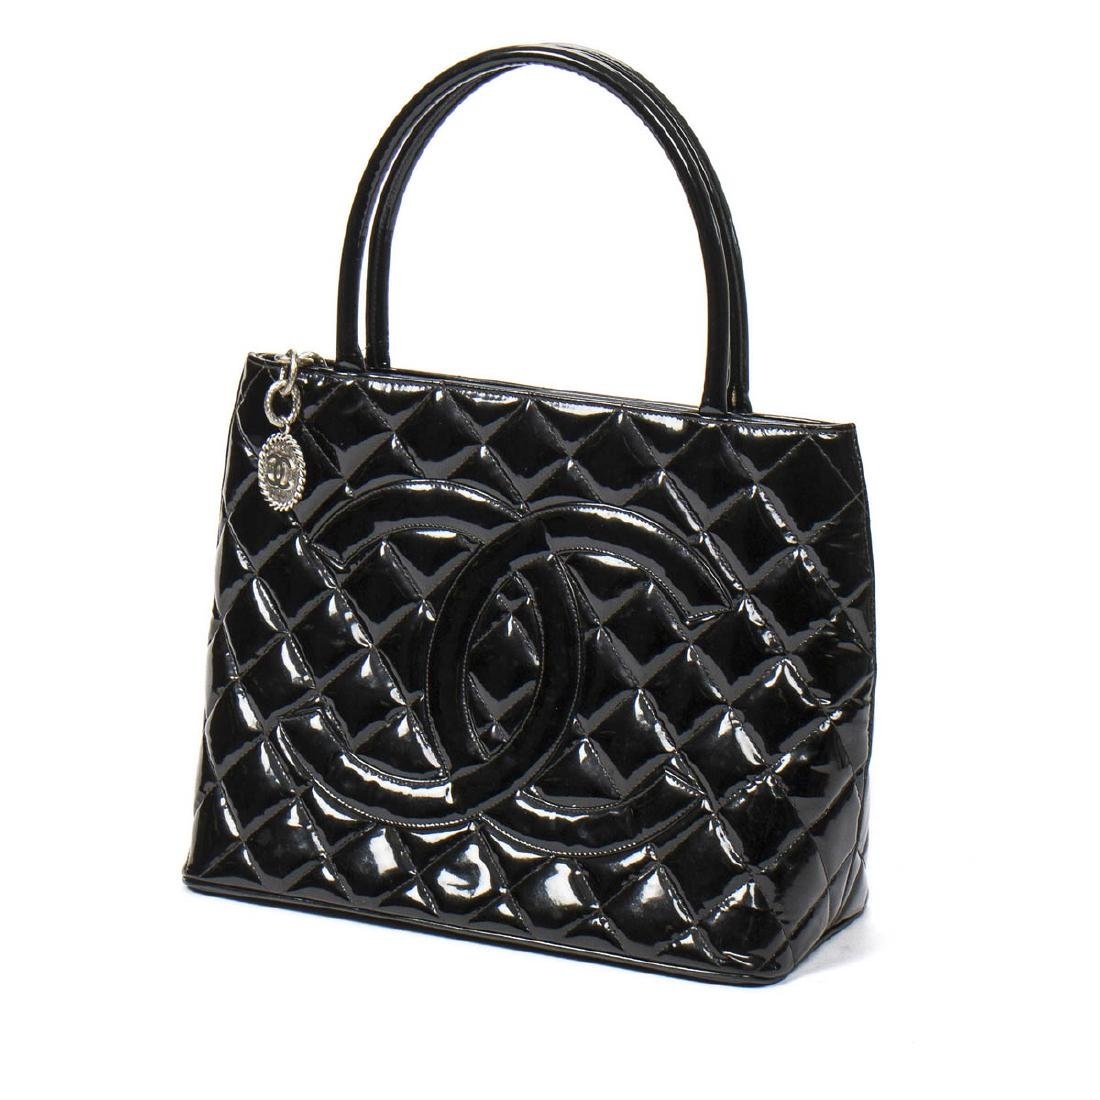 Chanel Medallion in Black Patent Quilted Leather - 2